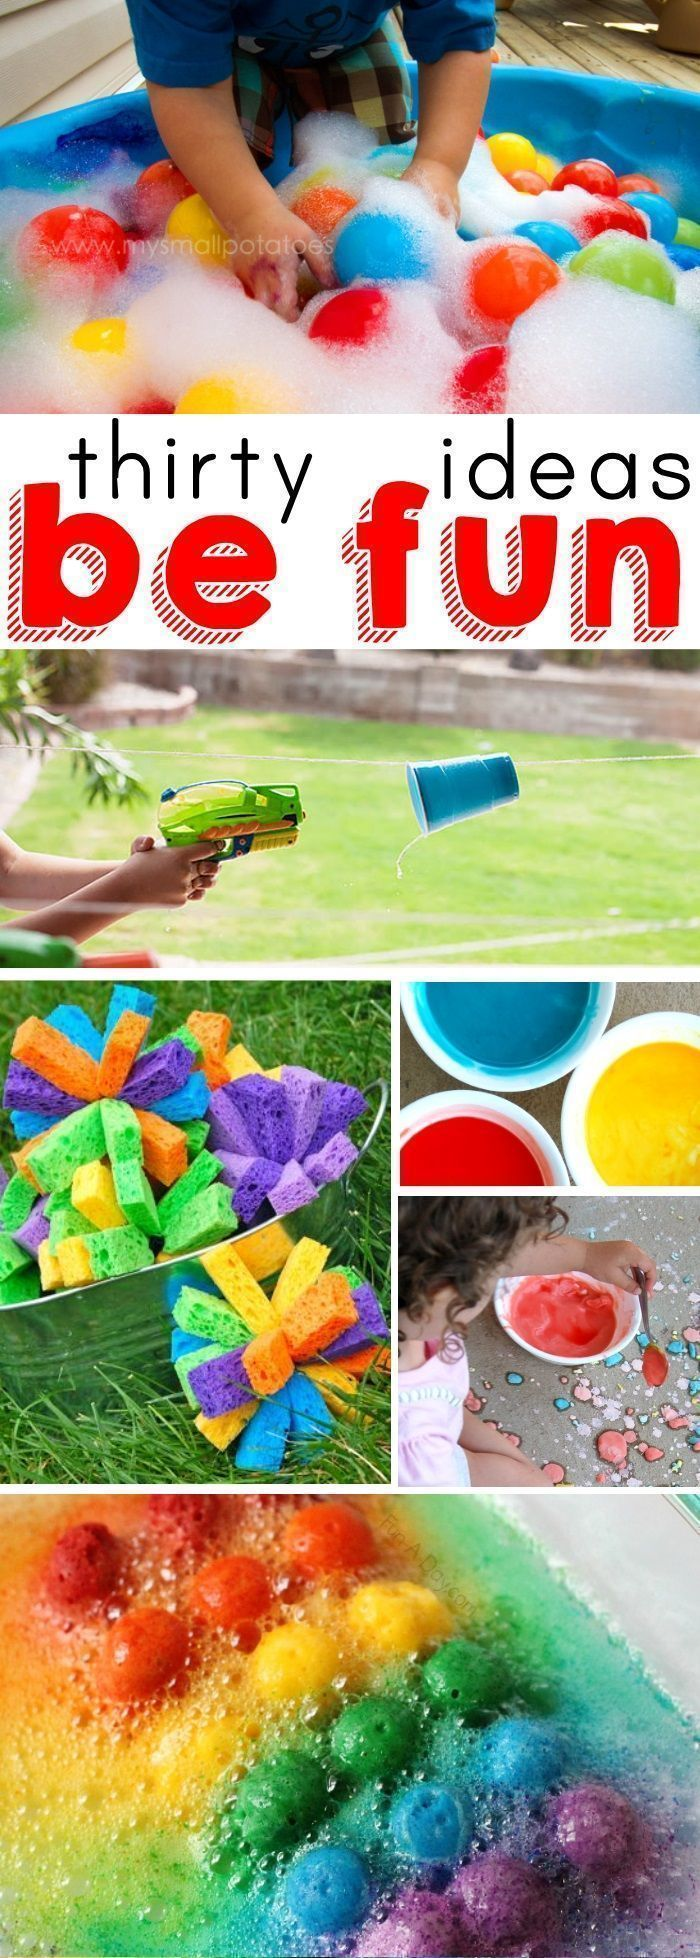 Crazy Cool Activity Ideas for Summer http://imgzu.com/image/eau771